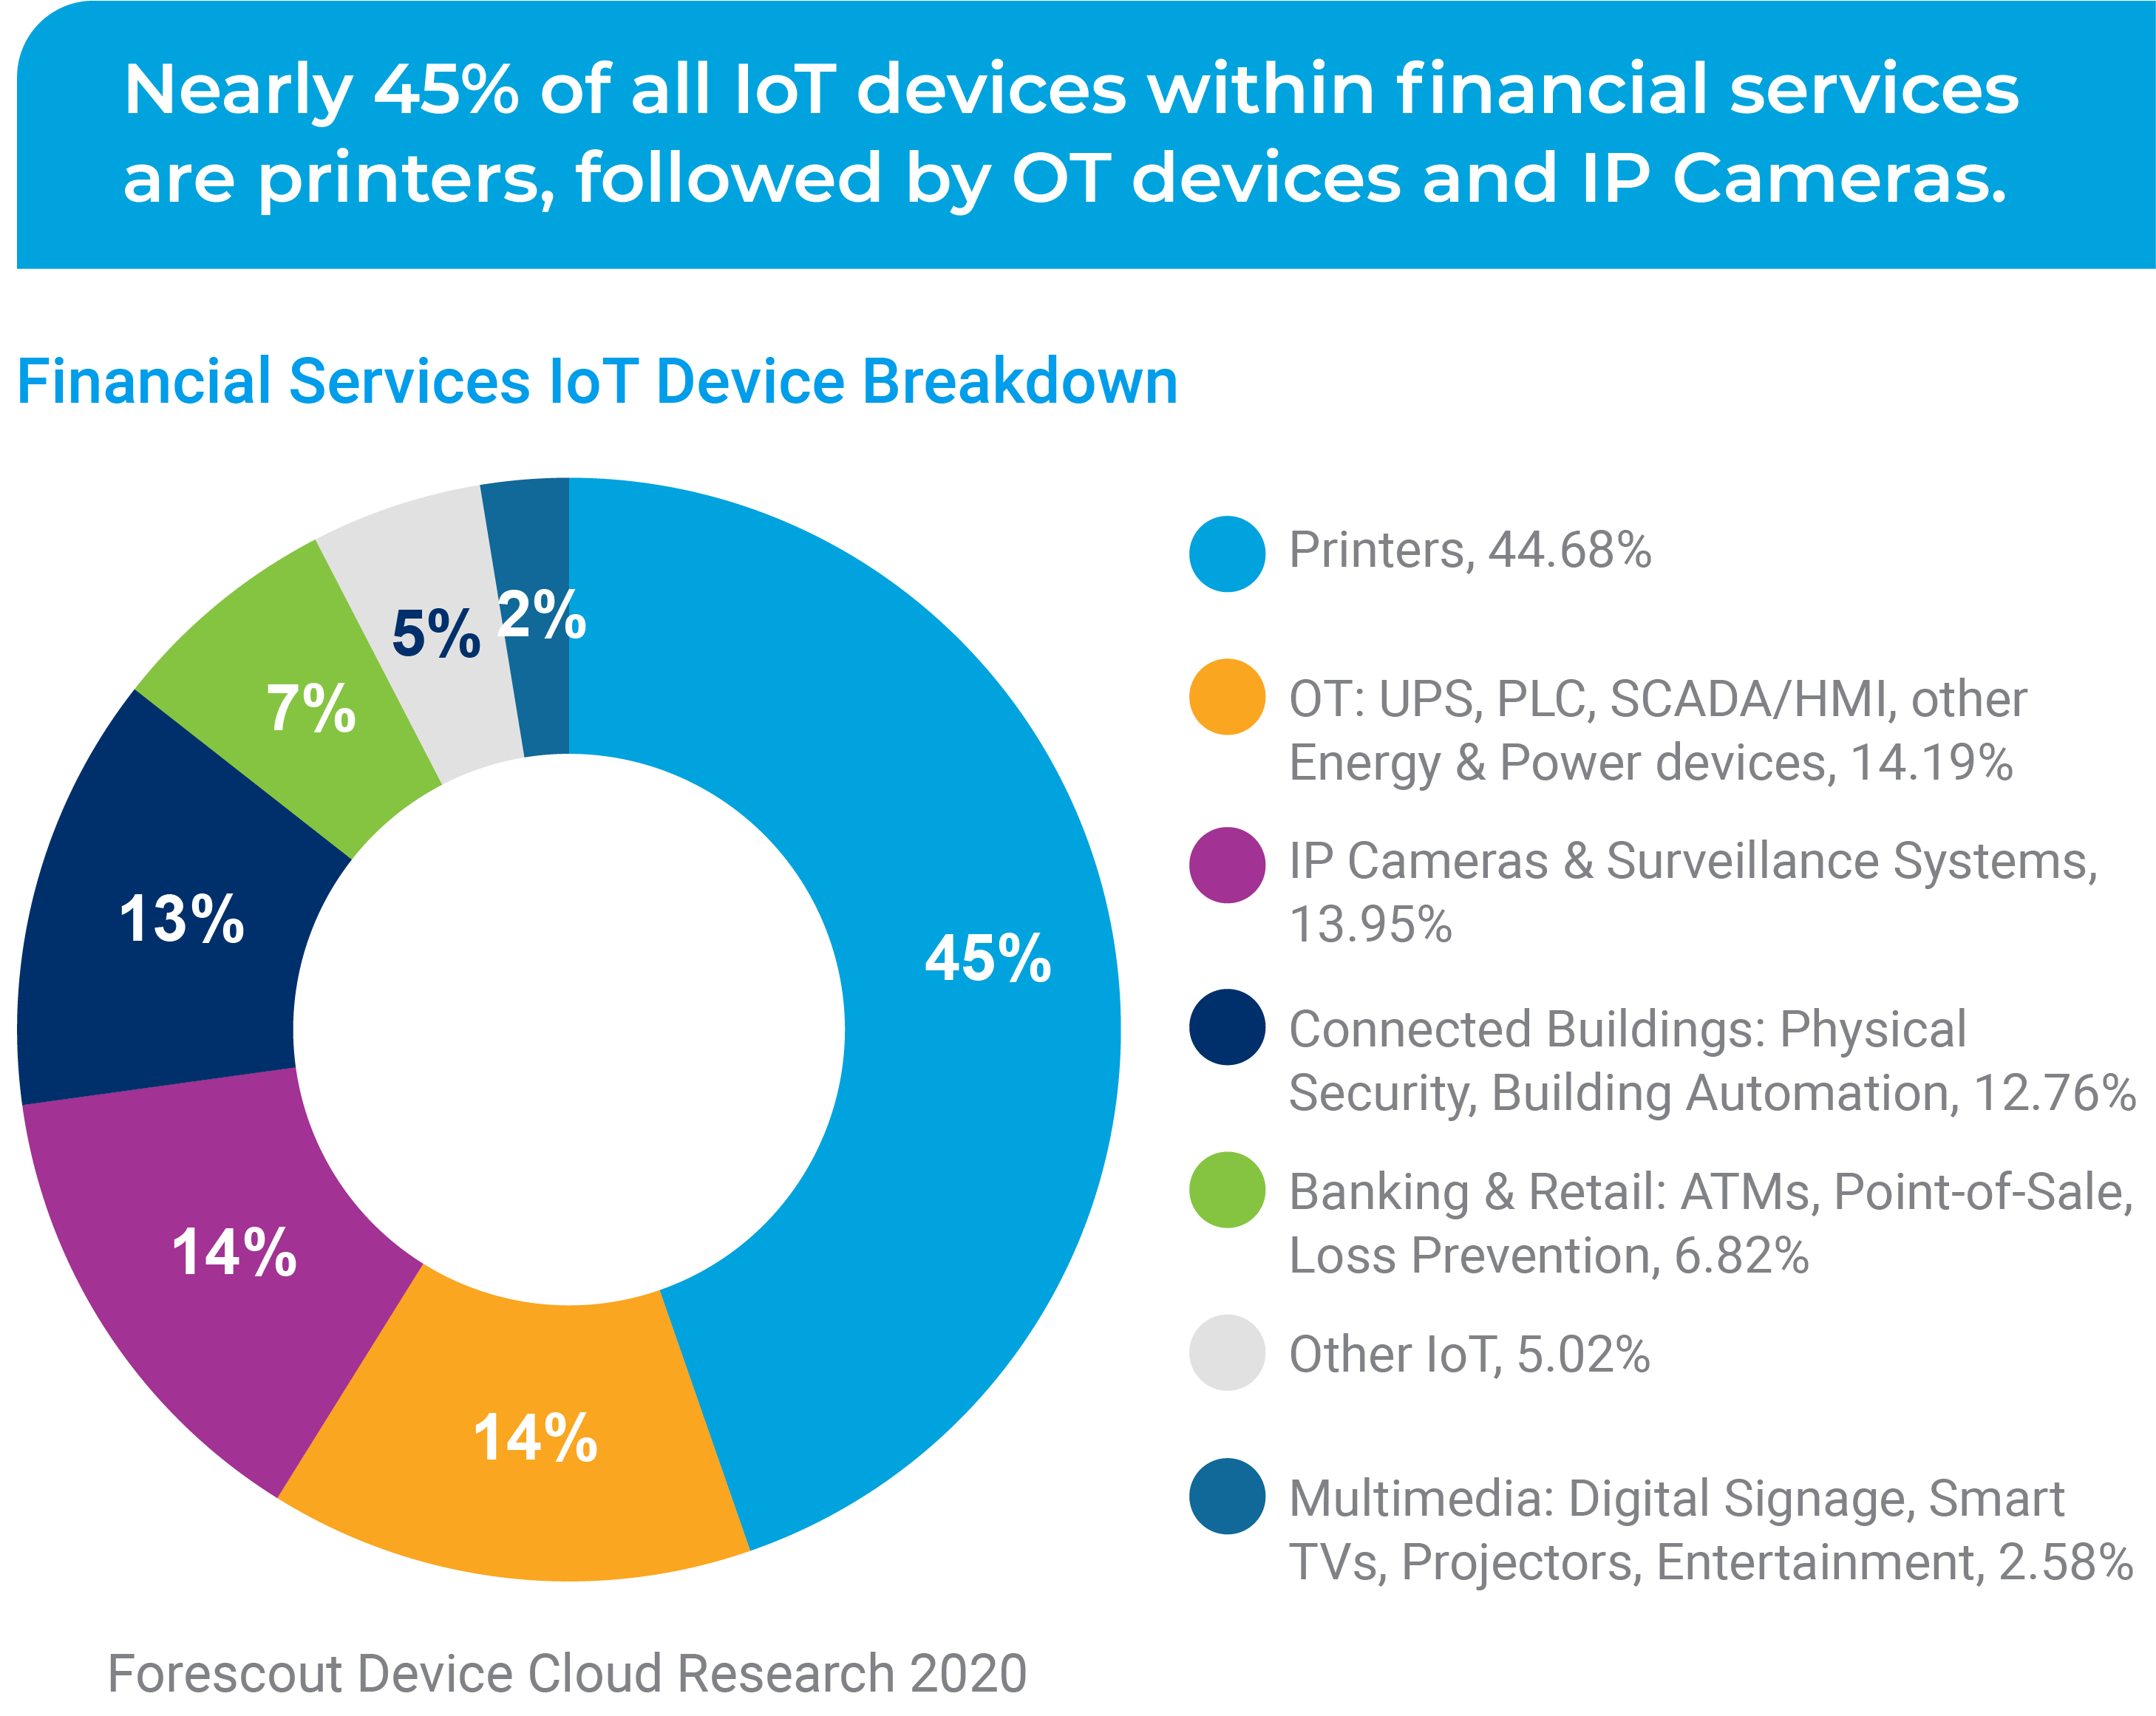 Nearly 45% of all IoT devices within financial services are printers, followed by OT devices and IP Cameras